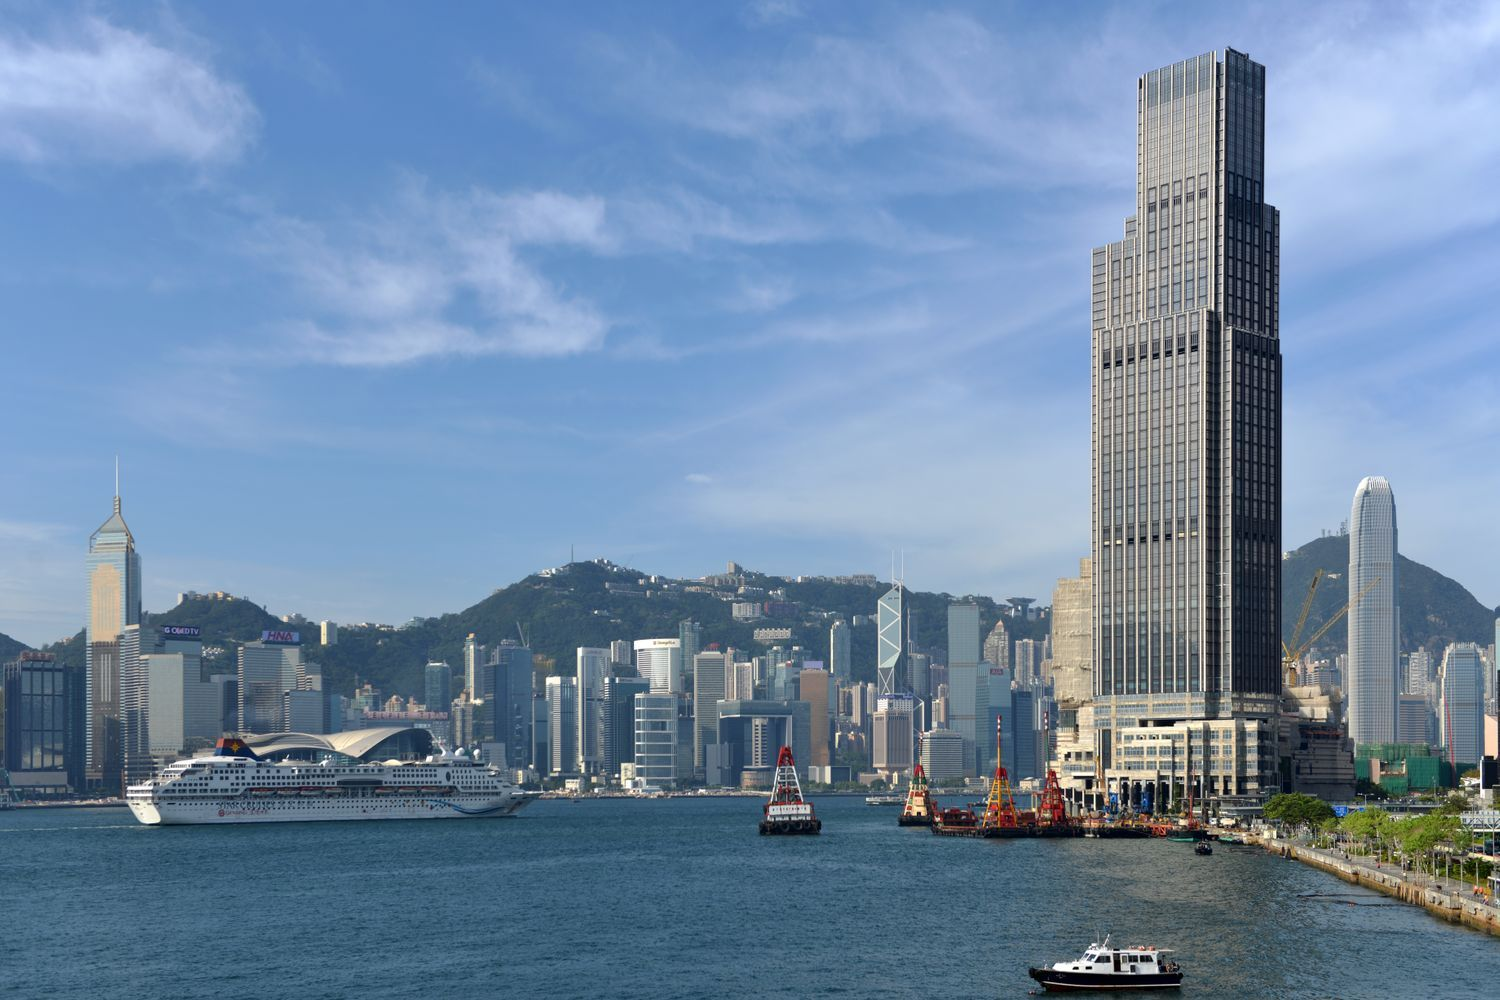 After eight successful years, the Hong Kong gallery moves across the harbor to K11 ATELIER Victoria Dockside on the Tsim Sha Tsui waterfront.